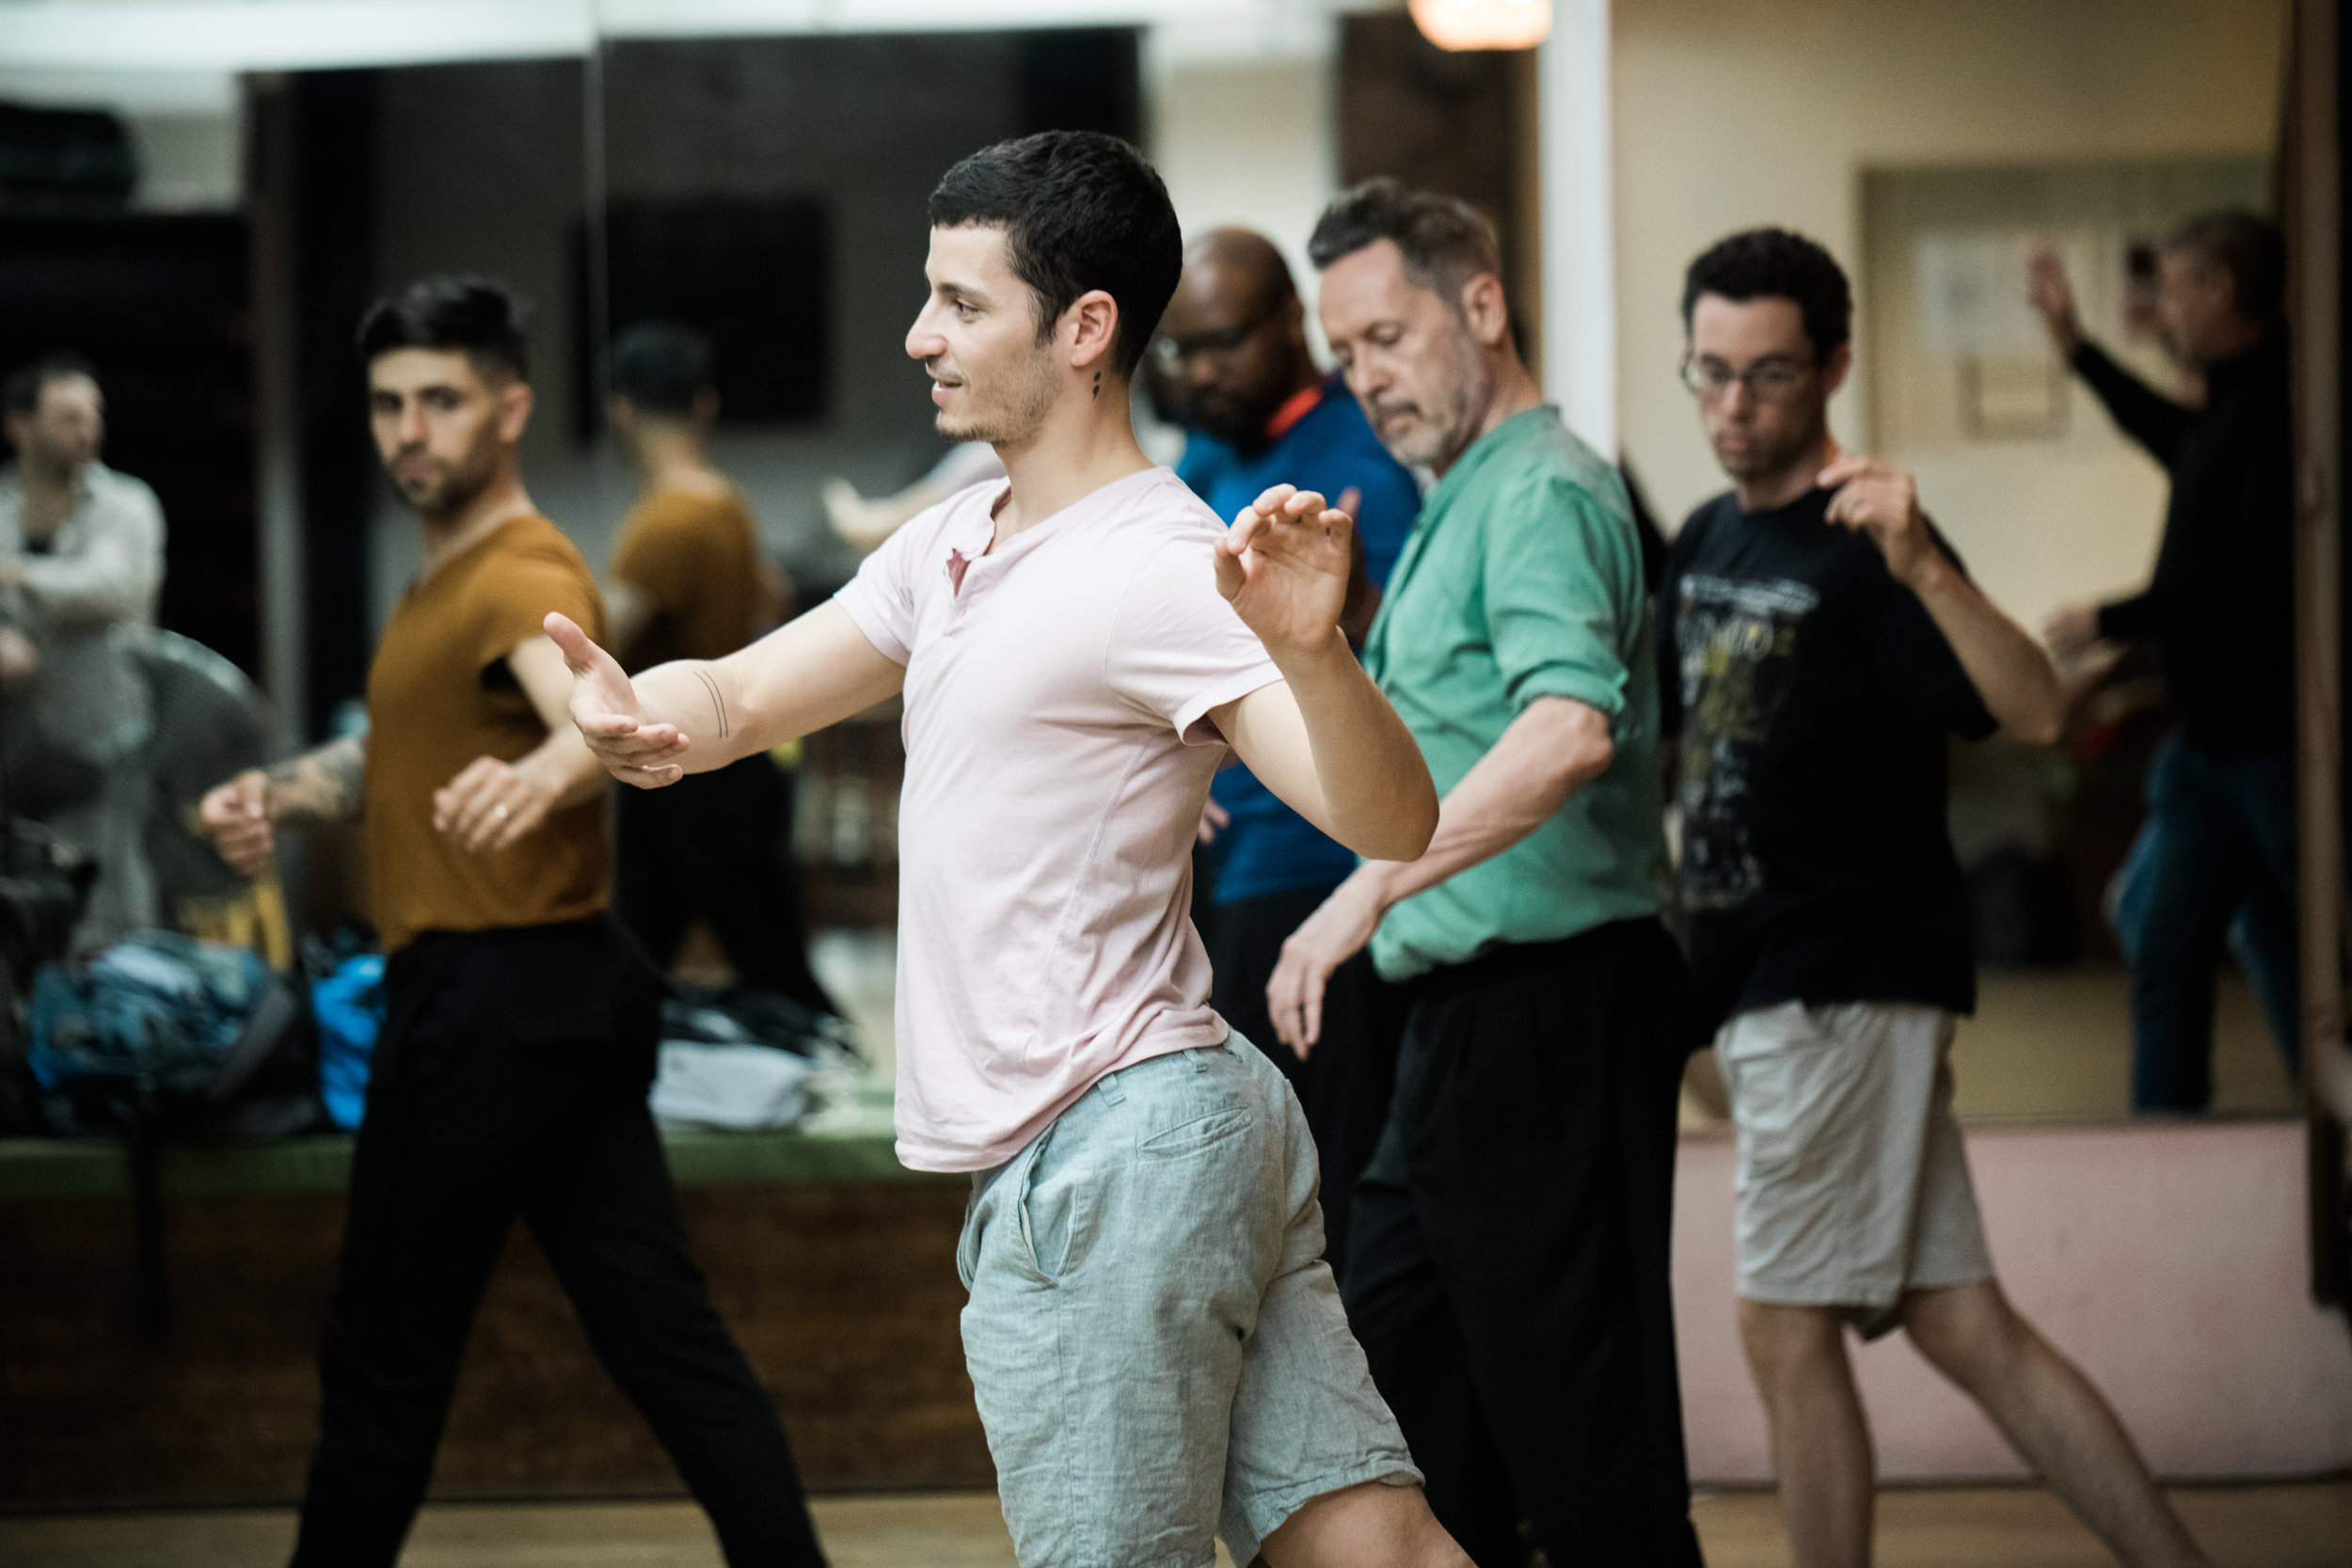 Alonso leads members of  Queer Tango NYC  through some intermediate steps.